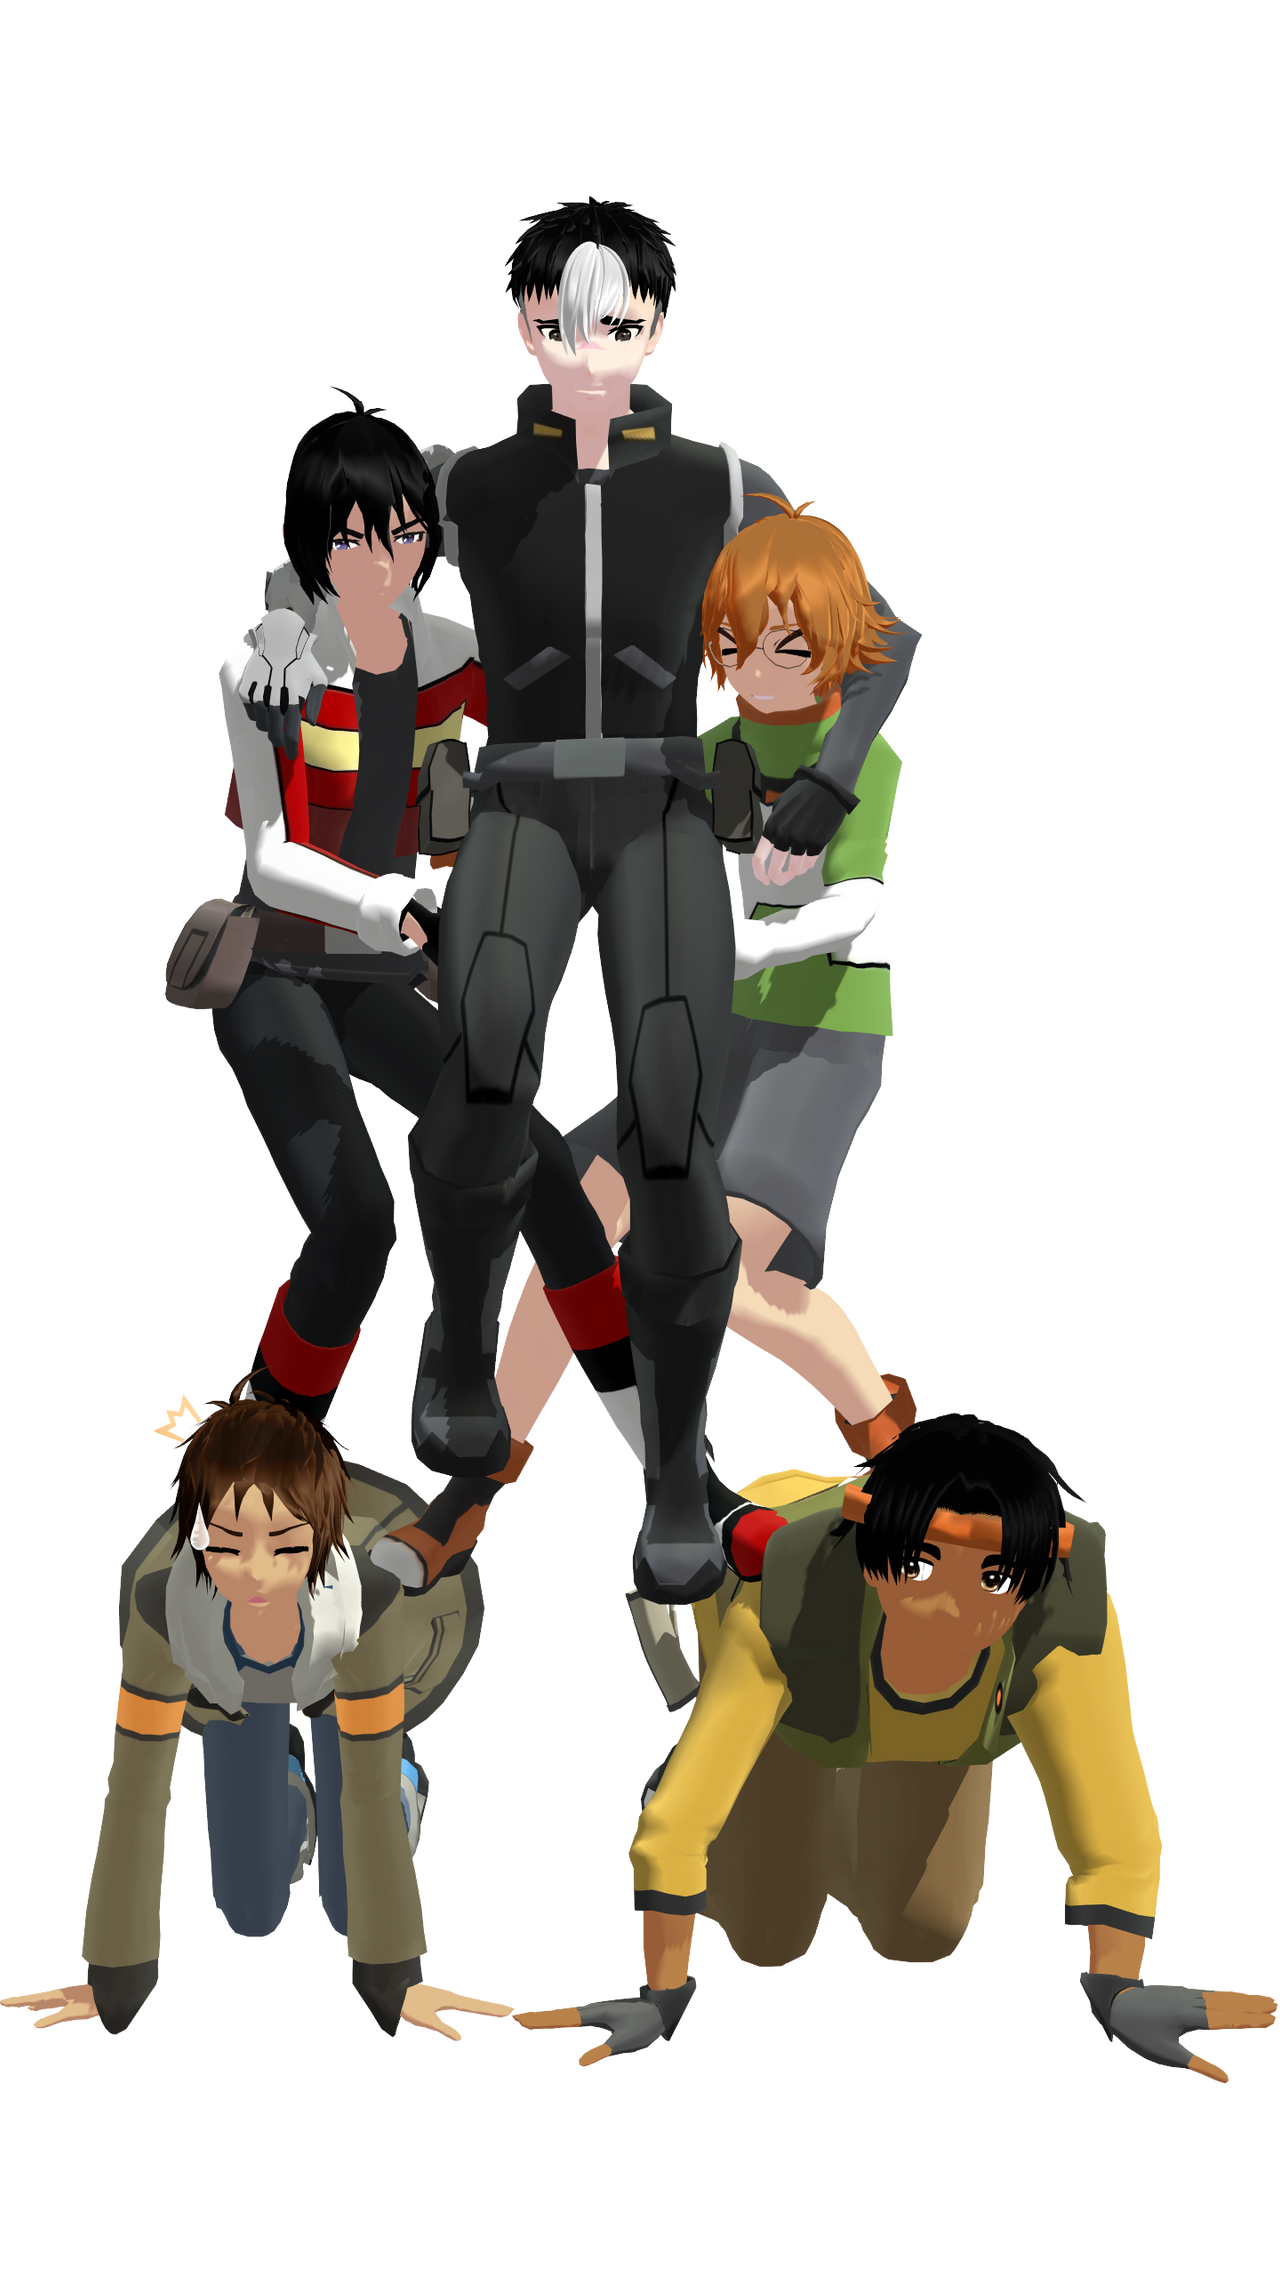 FoRM VoLTRON by CapKat500 on DeviantArt